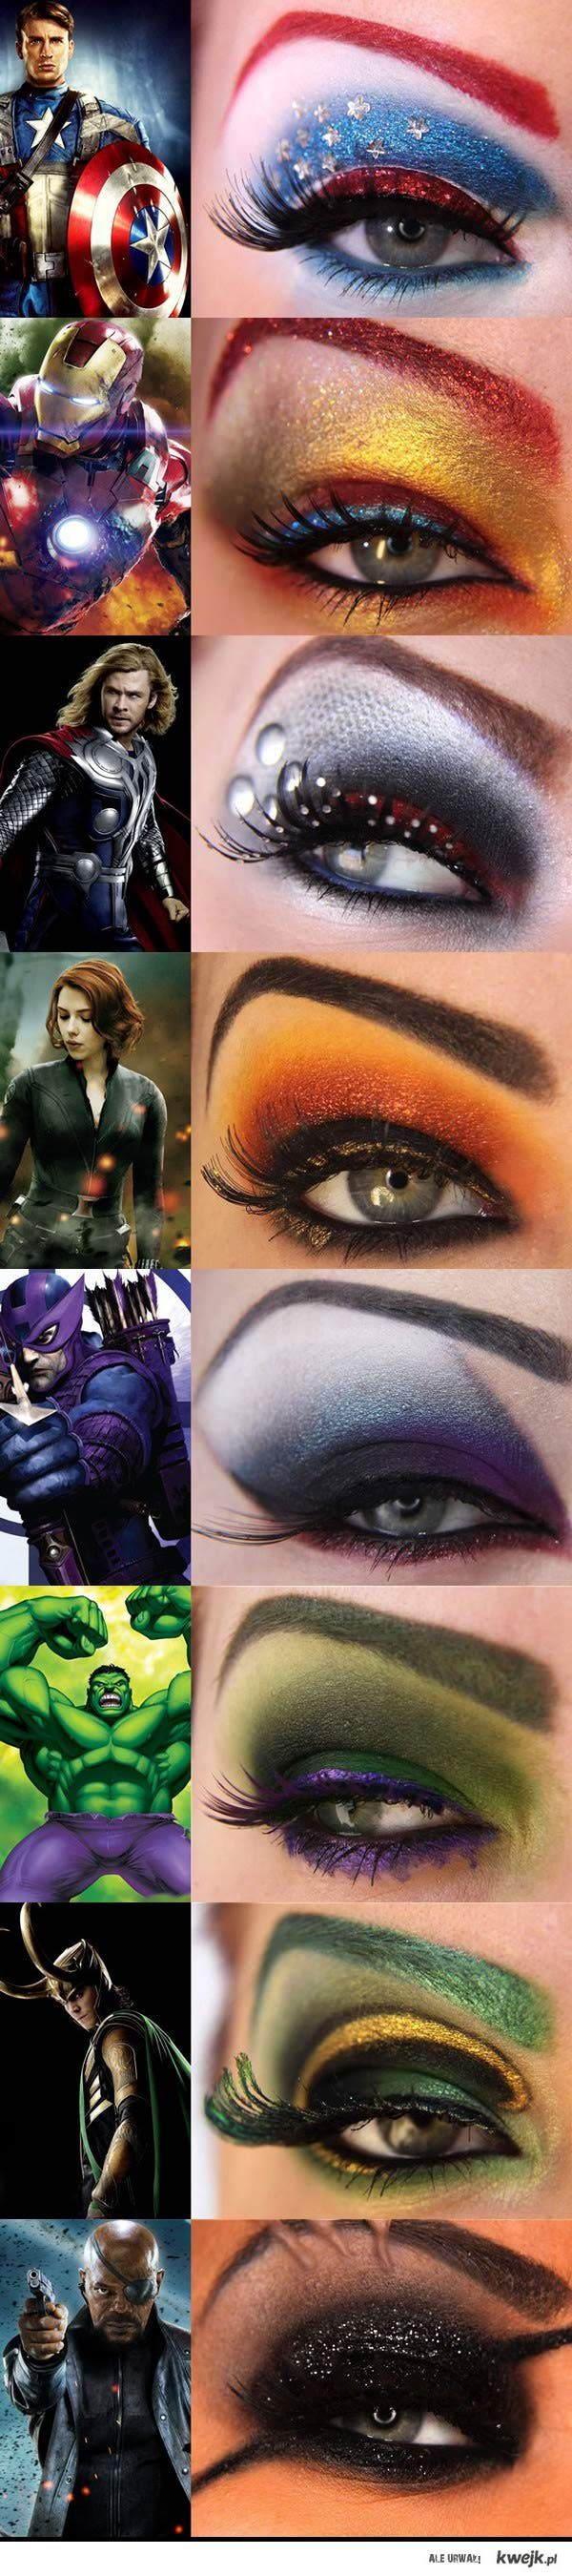 the avengers makeup-this is just so COOL!!!!